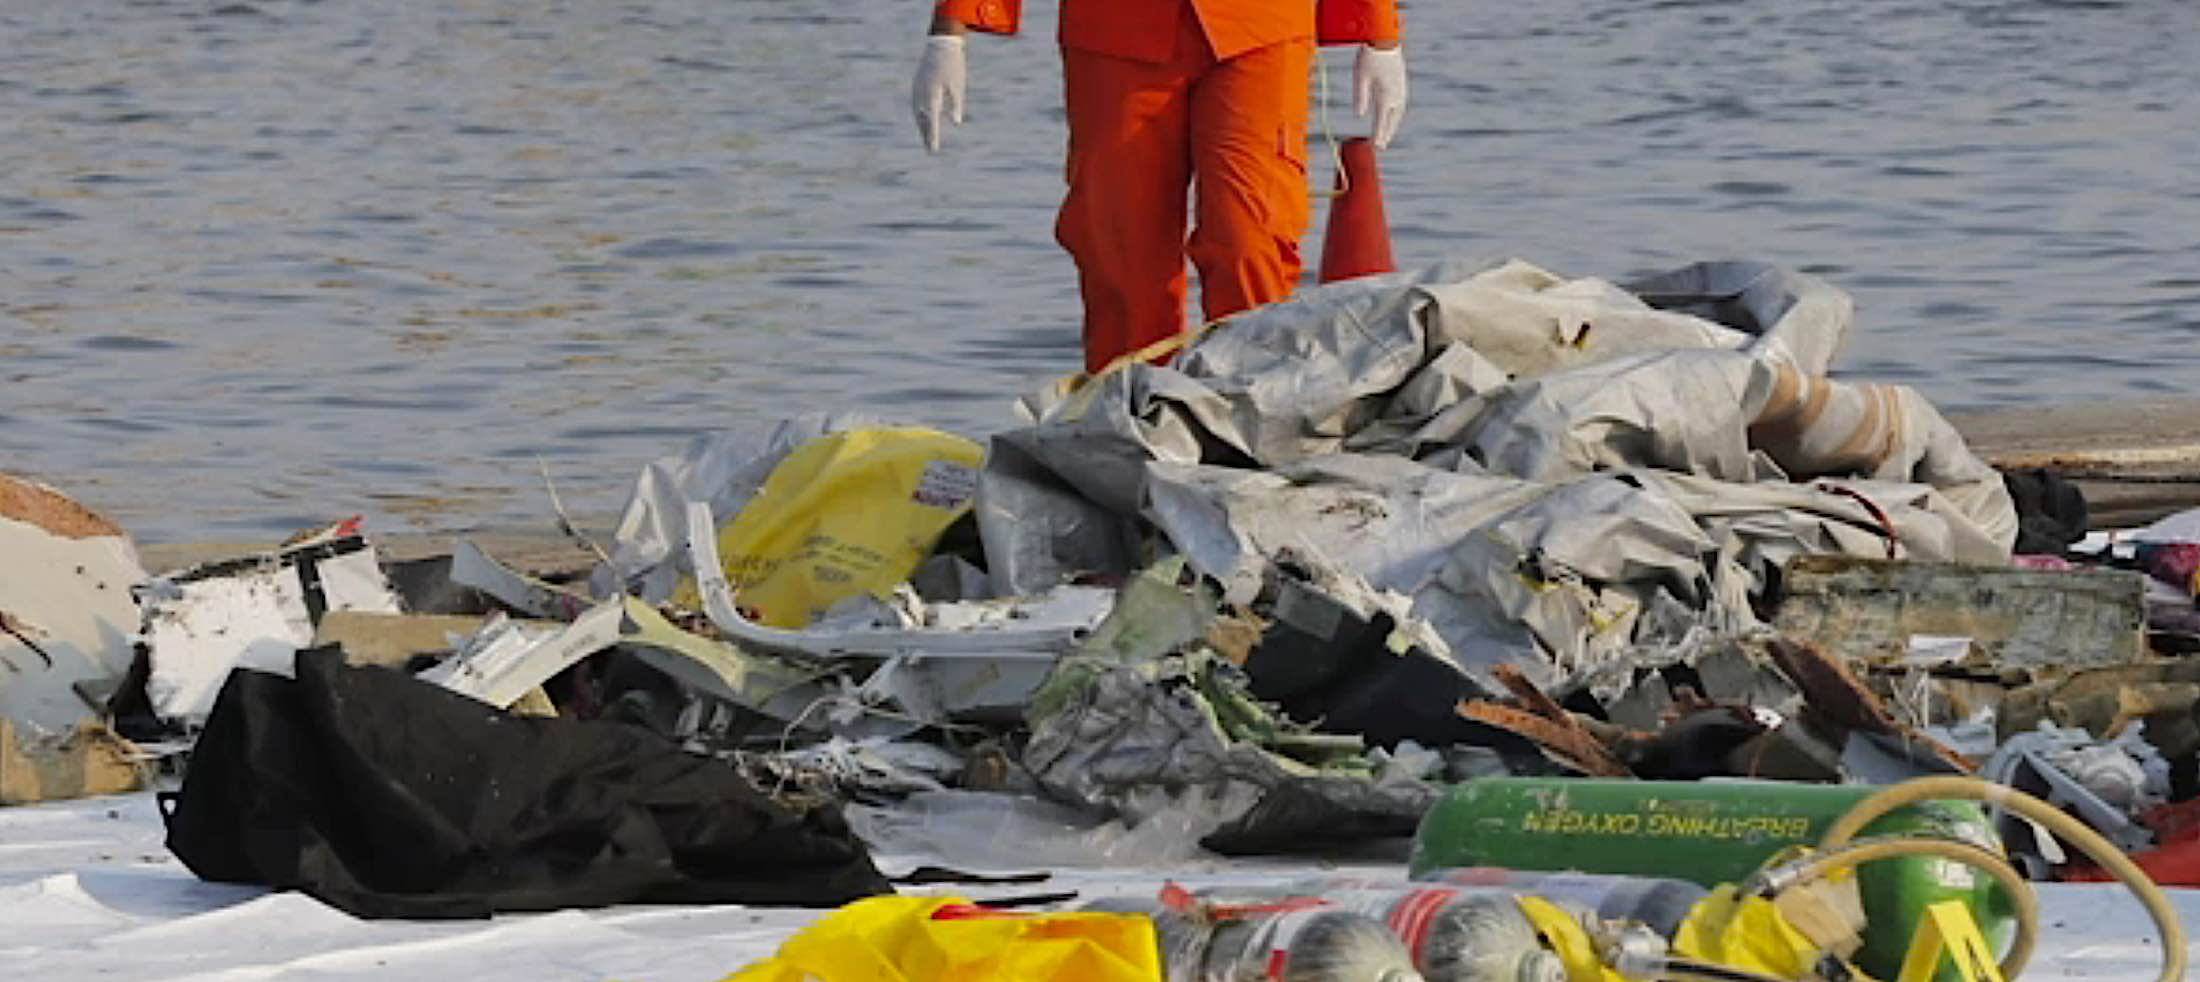 Engineered Design Insider Debris from Lion Air Flight 610 a Boeing 737 MAX 8 that crashed 3Oil Gas Automotive Aerospace Industry Magazine